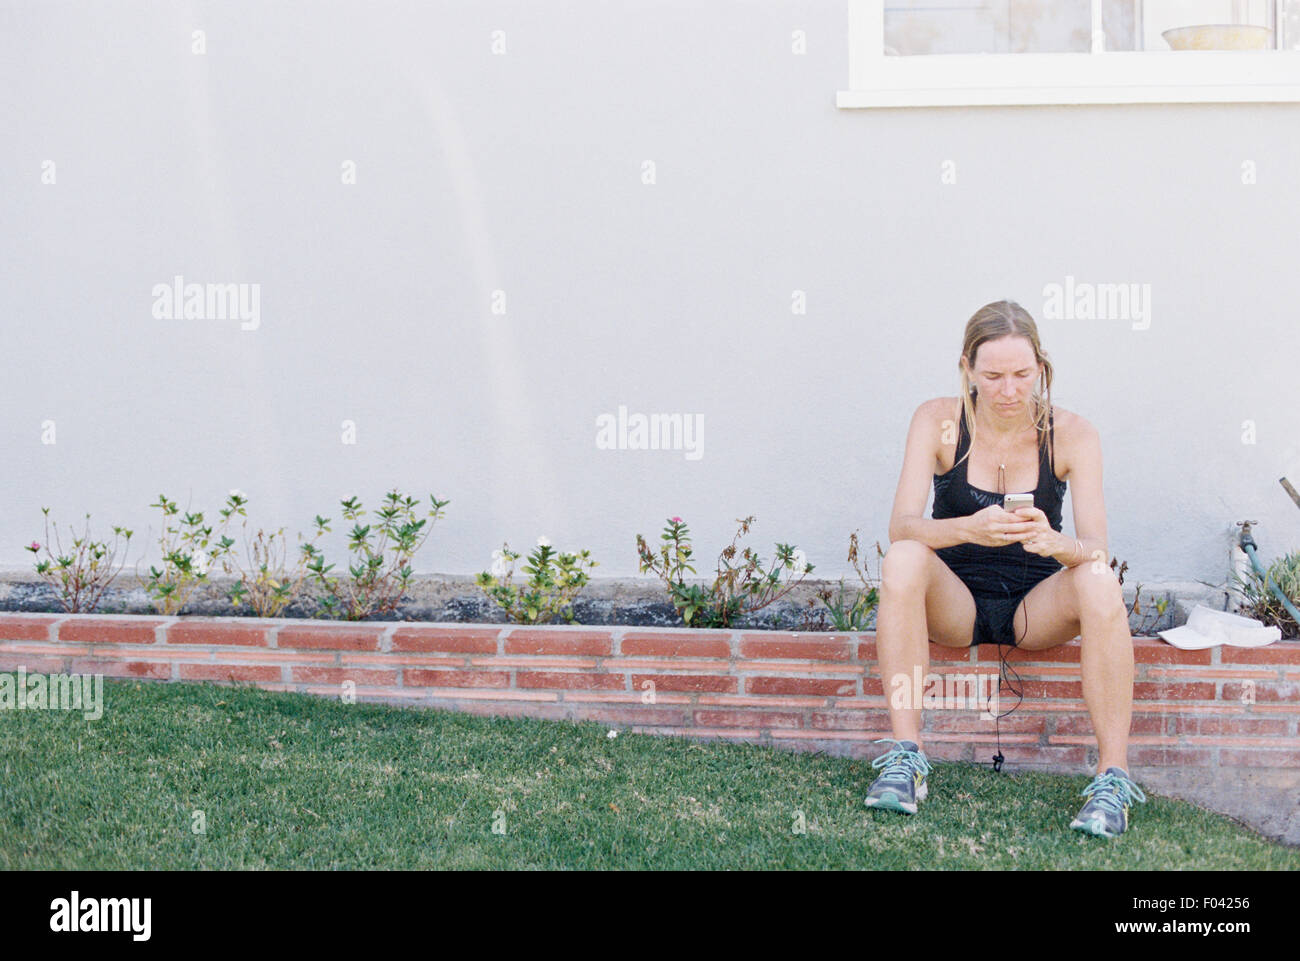 Blond woman in sportswear sitting on a garden wall, resting after a jog. - Stock Image